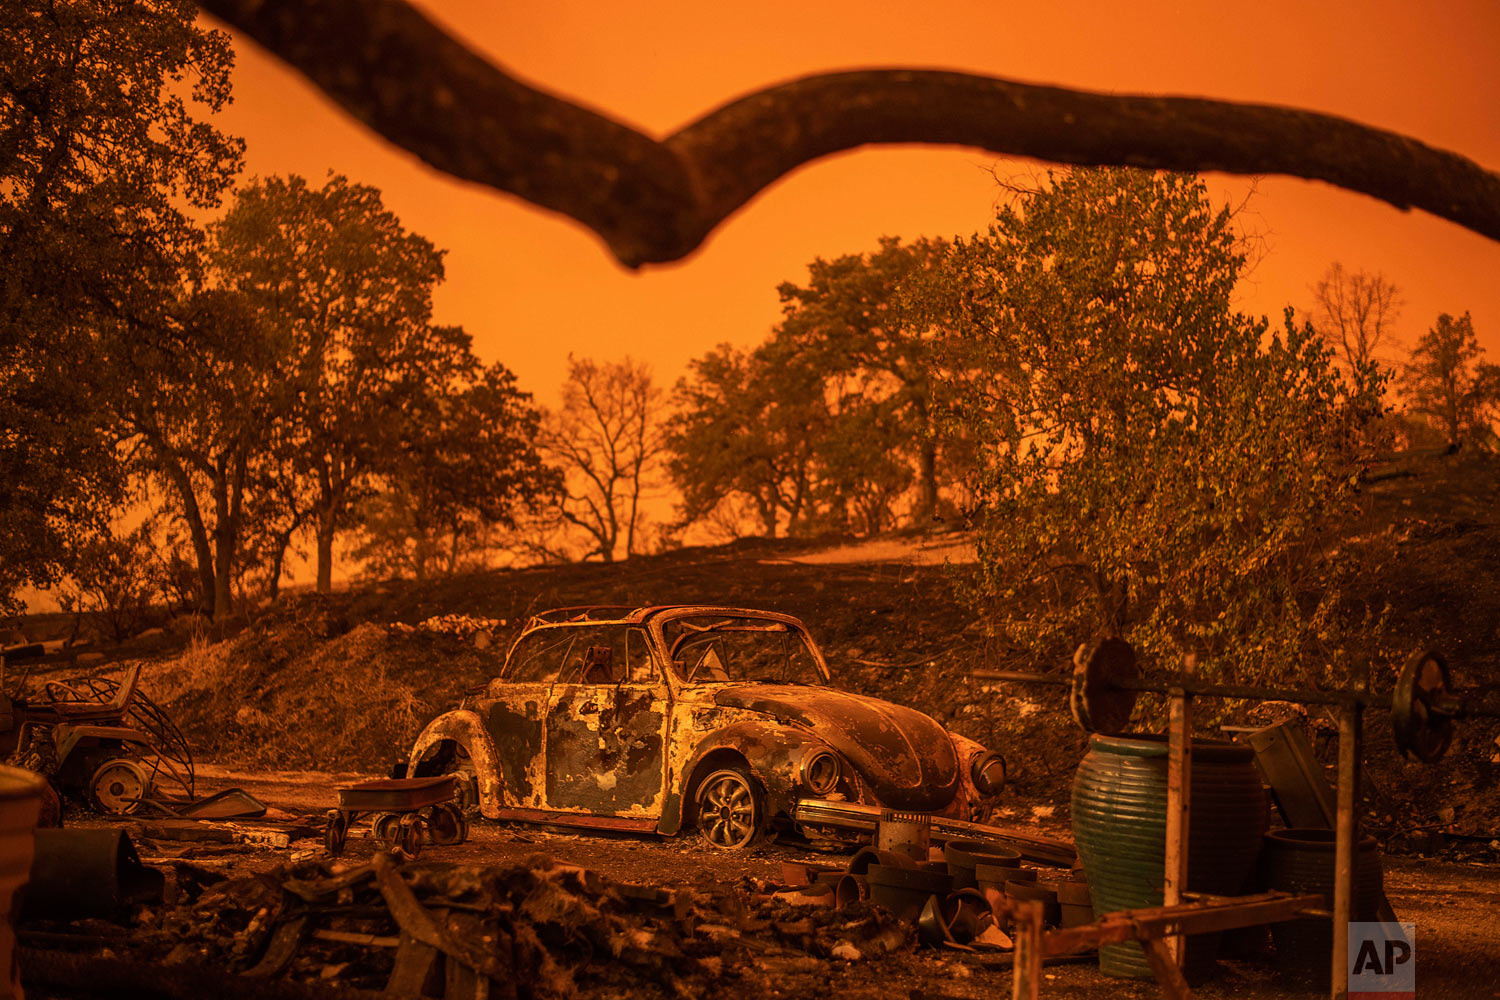 A Volkswagen Beetle scorched by a wildfire called the Carr Fire rests at a residence in Redding, Calif., Friday, July 27, 2018. The wildfire roared with little warning into the Northern California city as thousands of people scrambled to escape before the walls of flames descended from forested hills onto their neighborhoods, officials said Friday. (AP Photo/Noah Berger)